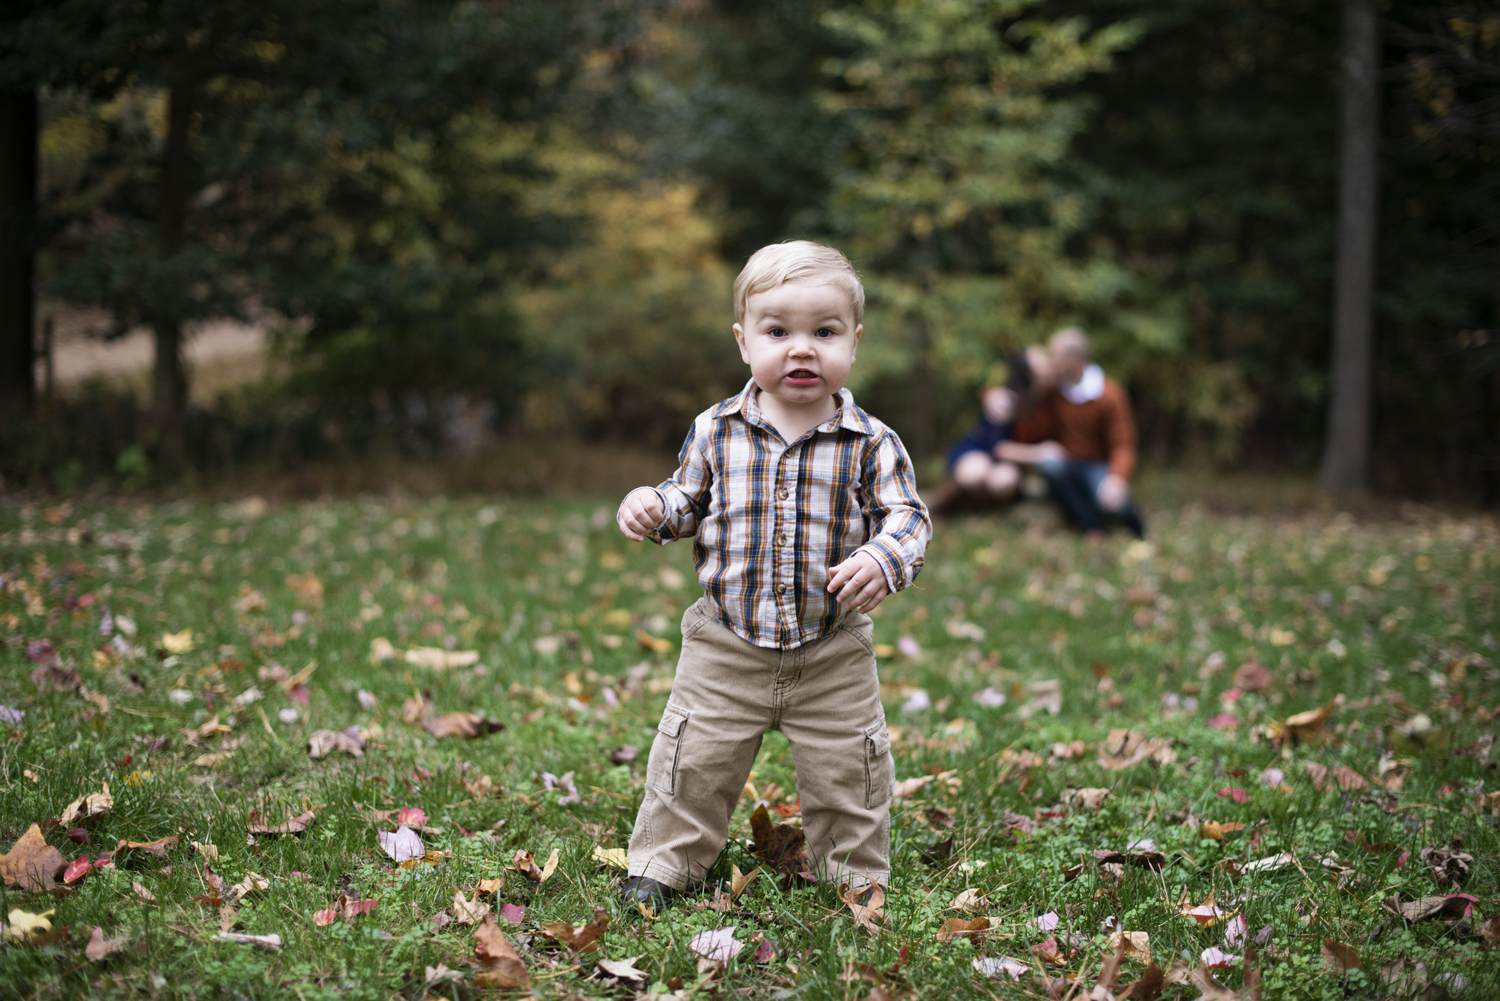 Cute family picture ideas with baby in the fall